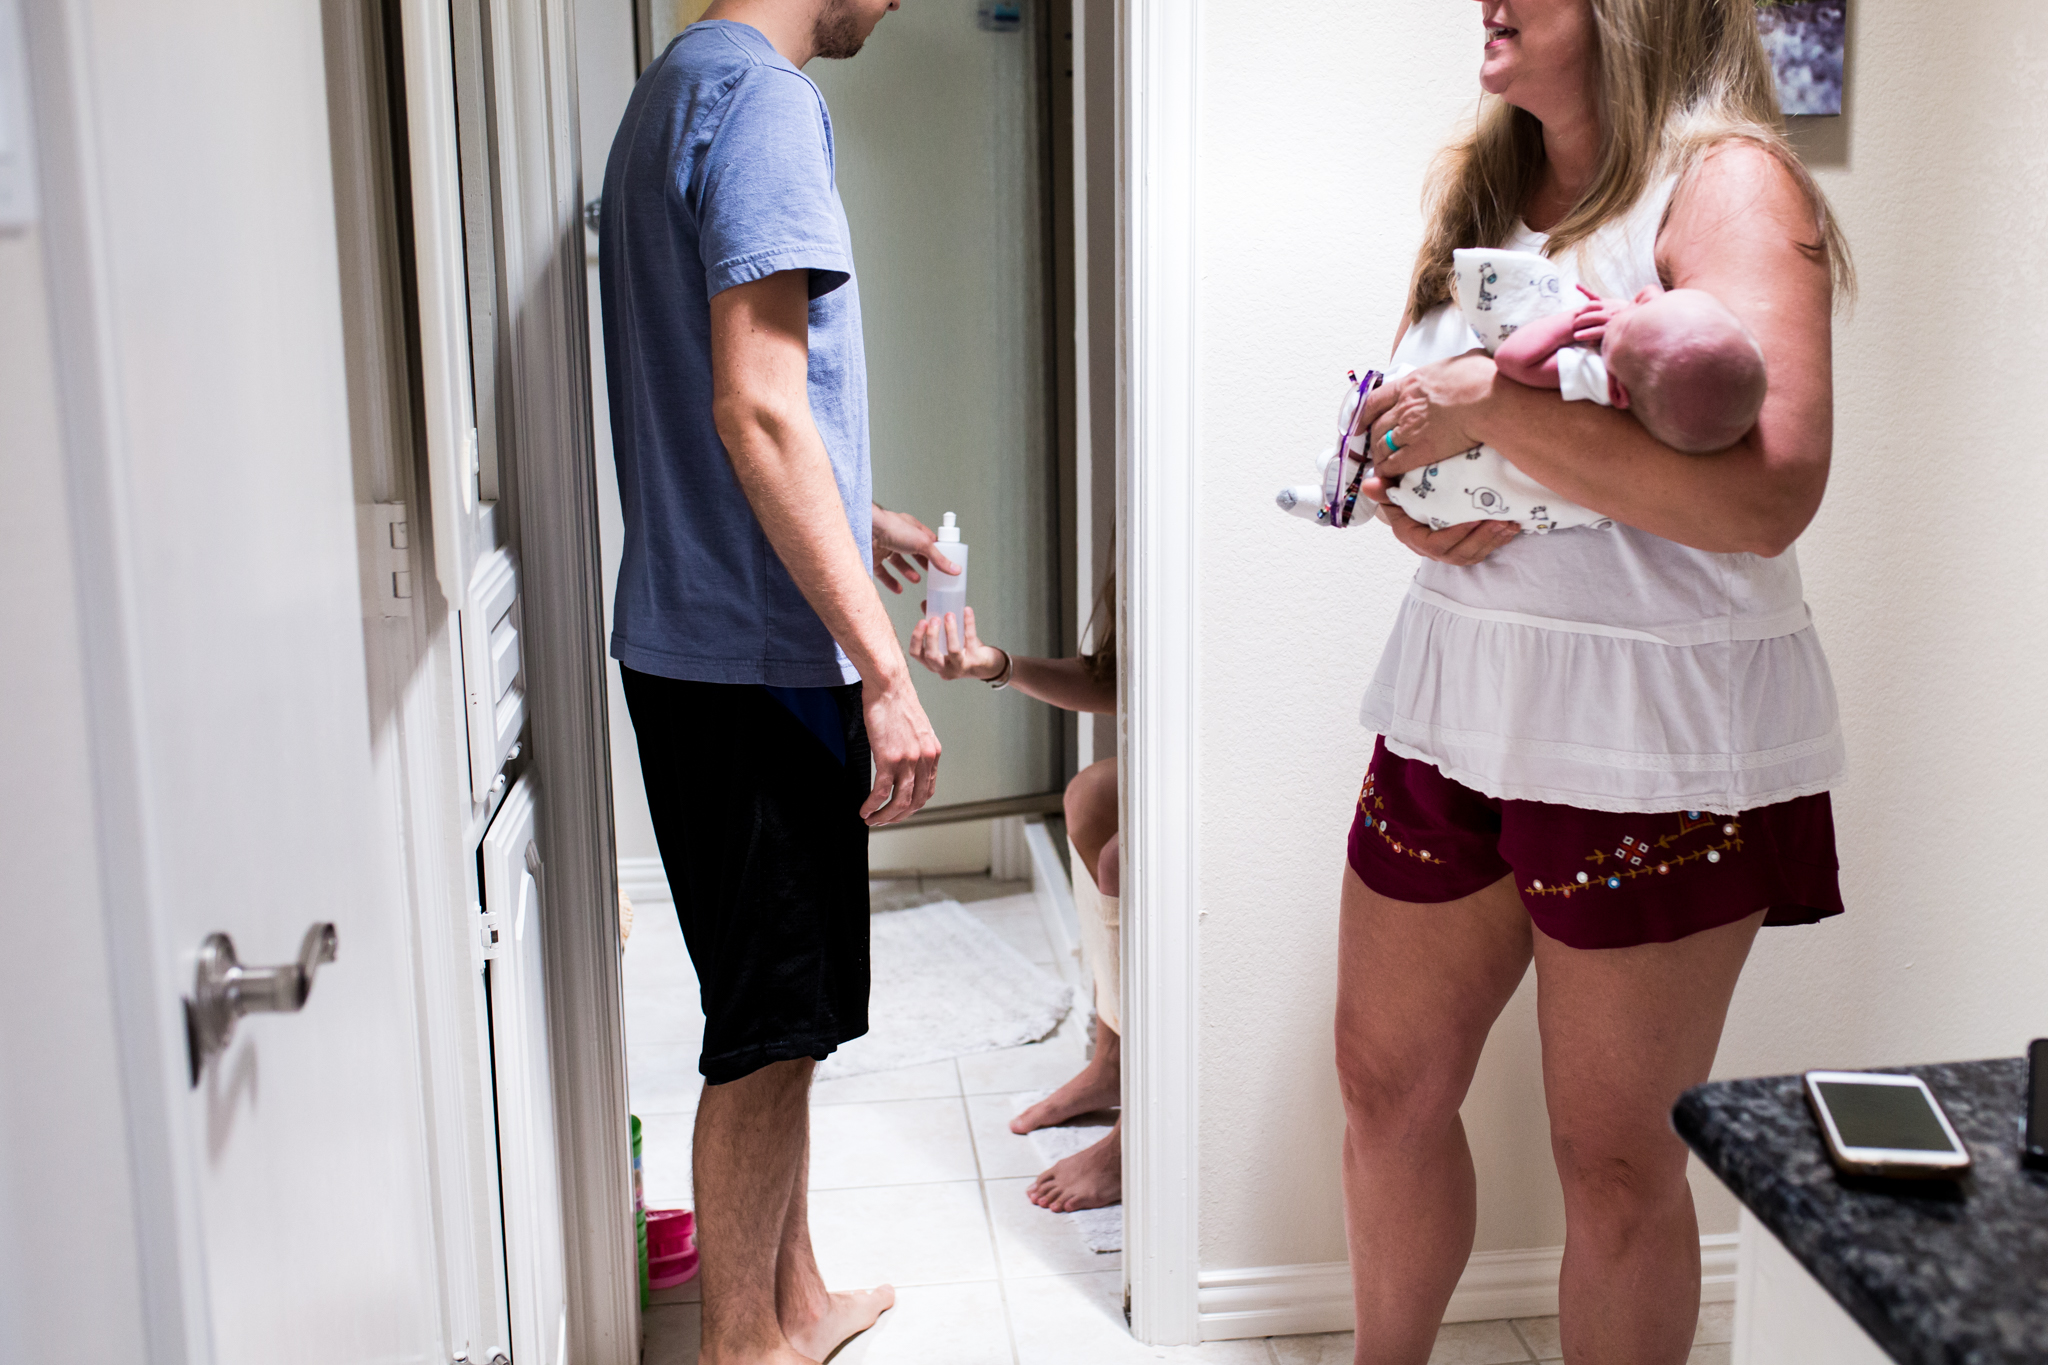 Lawren Rose Photography captures a personal moment during an in-home postpartum session where the grandma is holding a 3 day old boy while dad is handing mom a peri bottle while shes sitting on the toilet